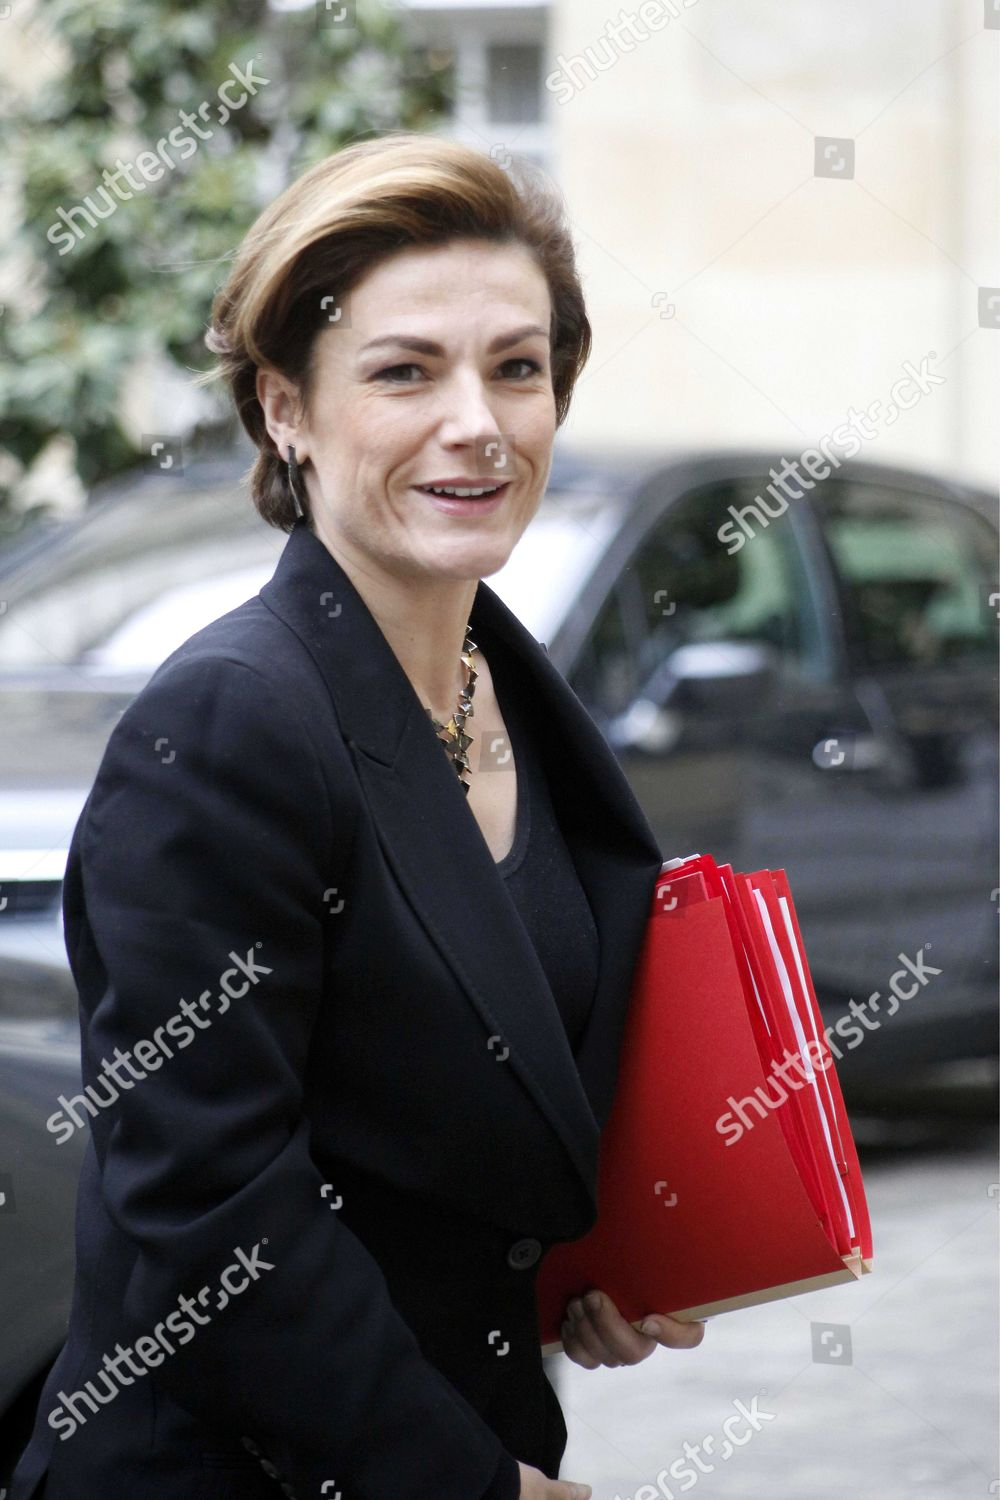 Stock photo of Government Meeting Focusing on 'Future Investment' Paris, France - 03 May 2010